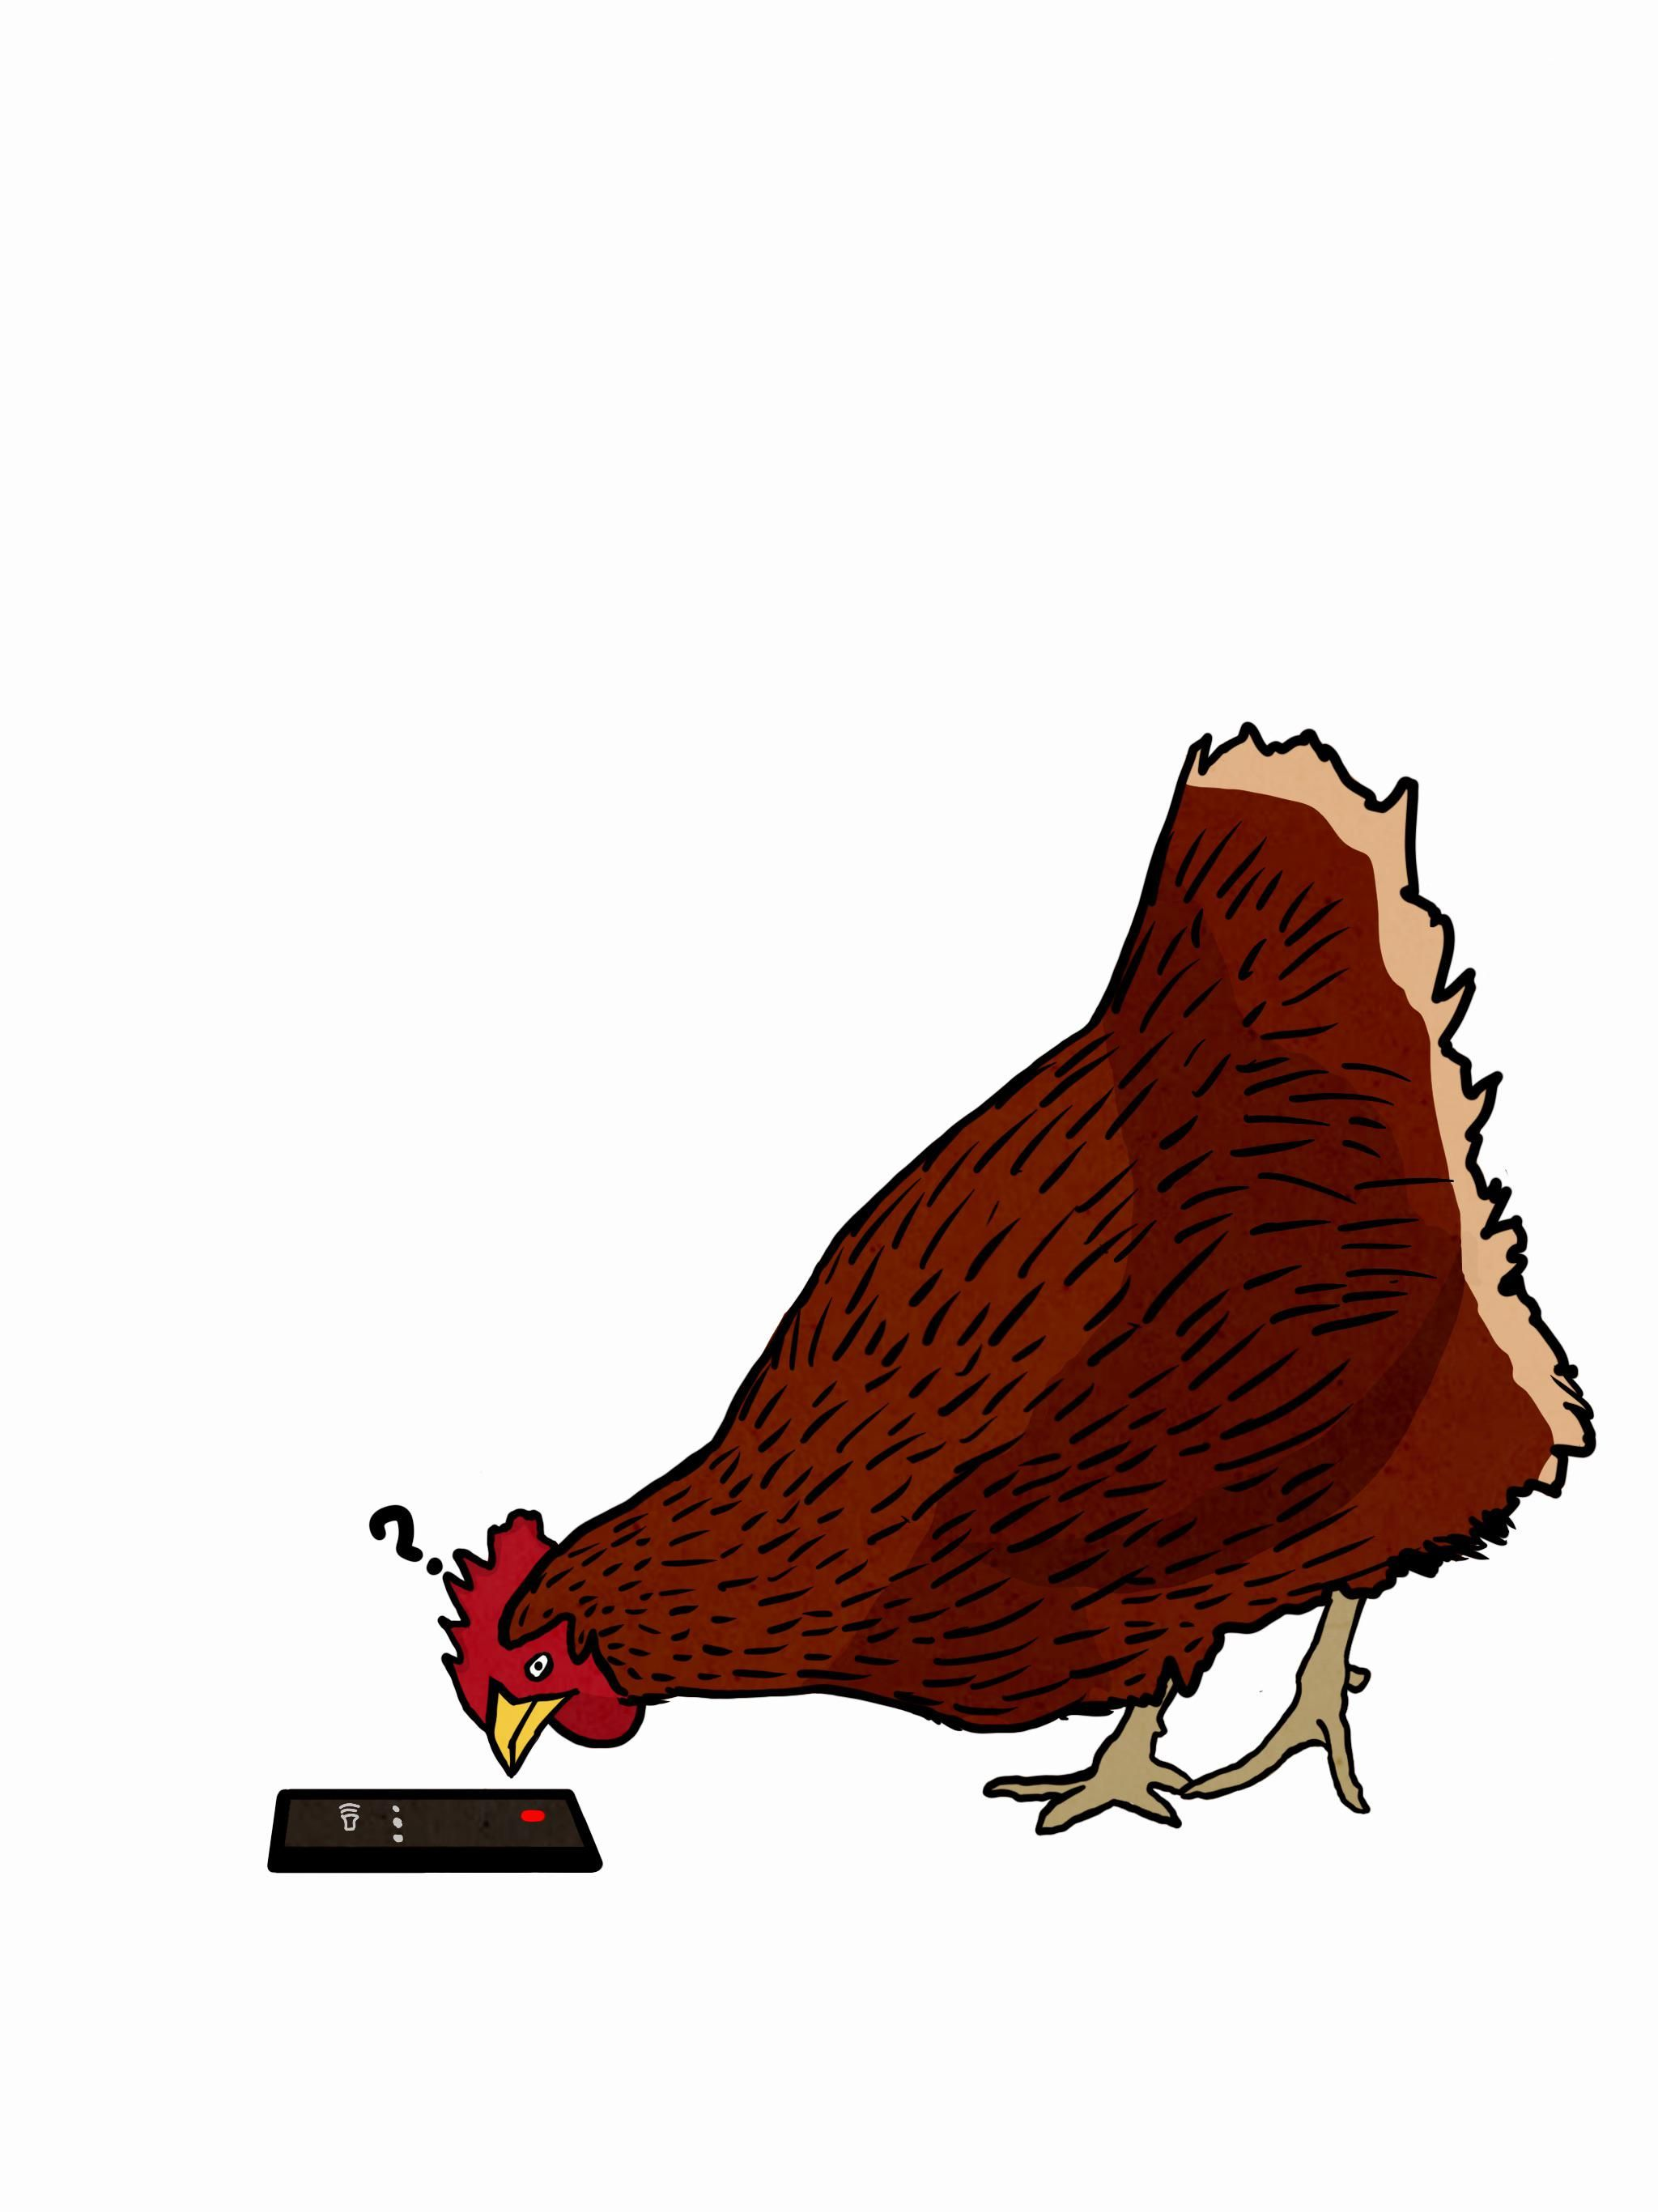 I work at a call center. Sometimes I like to draw what my callers might look like; today I answered a call to nothing but the sound of a bunch of chickens clucking. So uh yeah here that is I guess